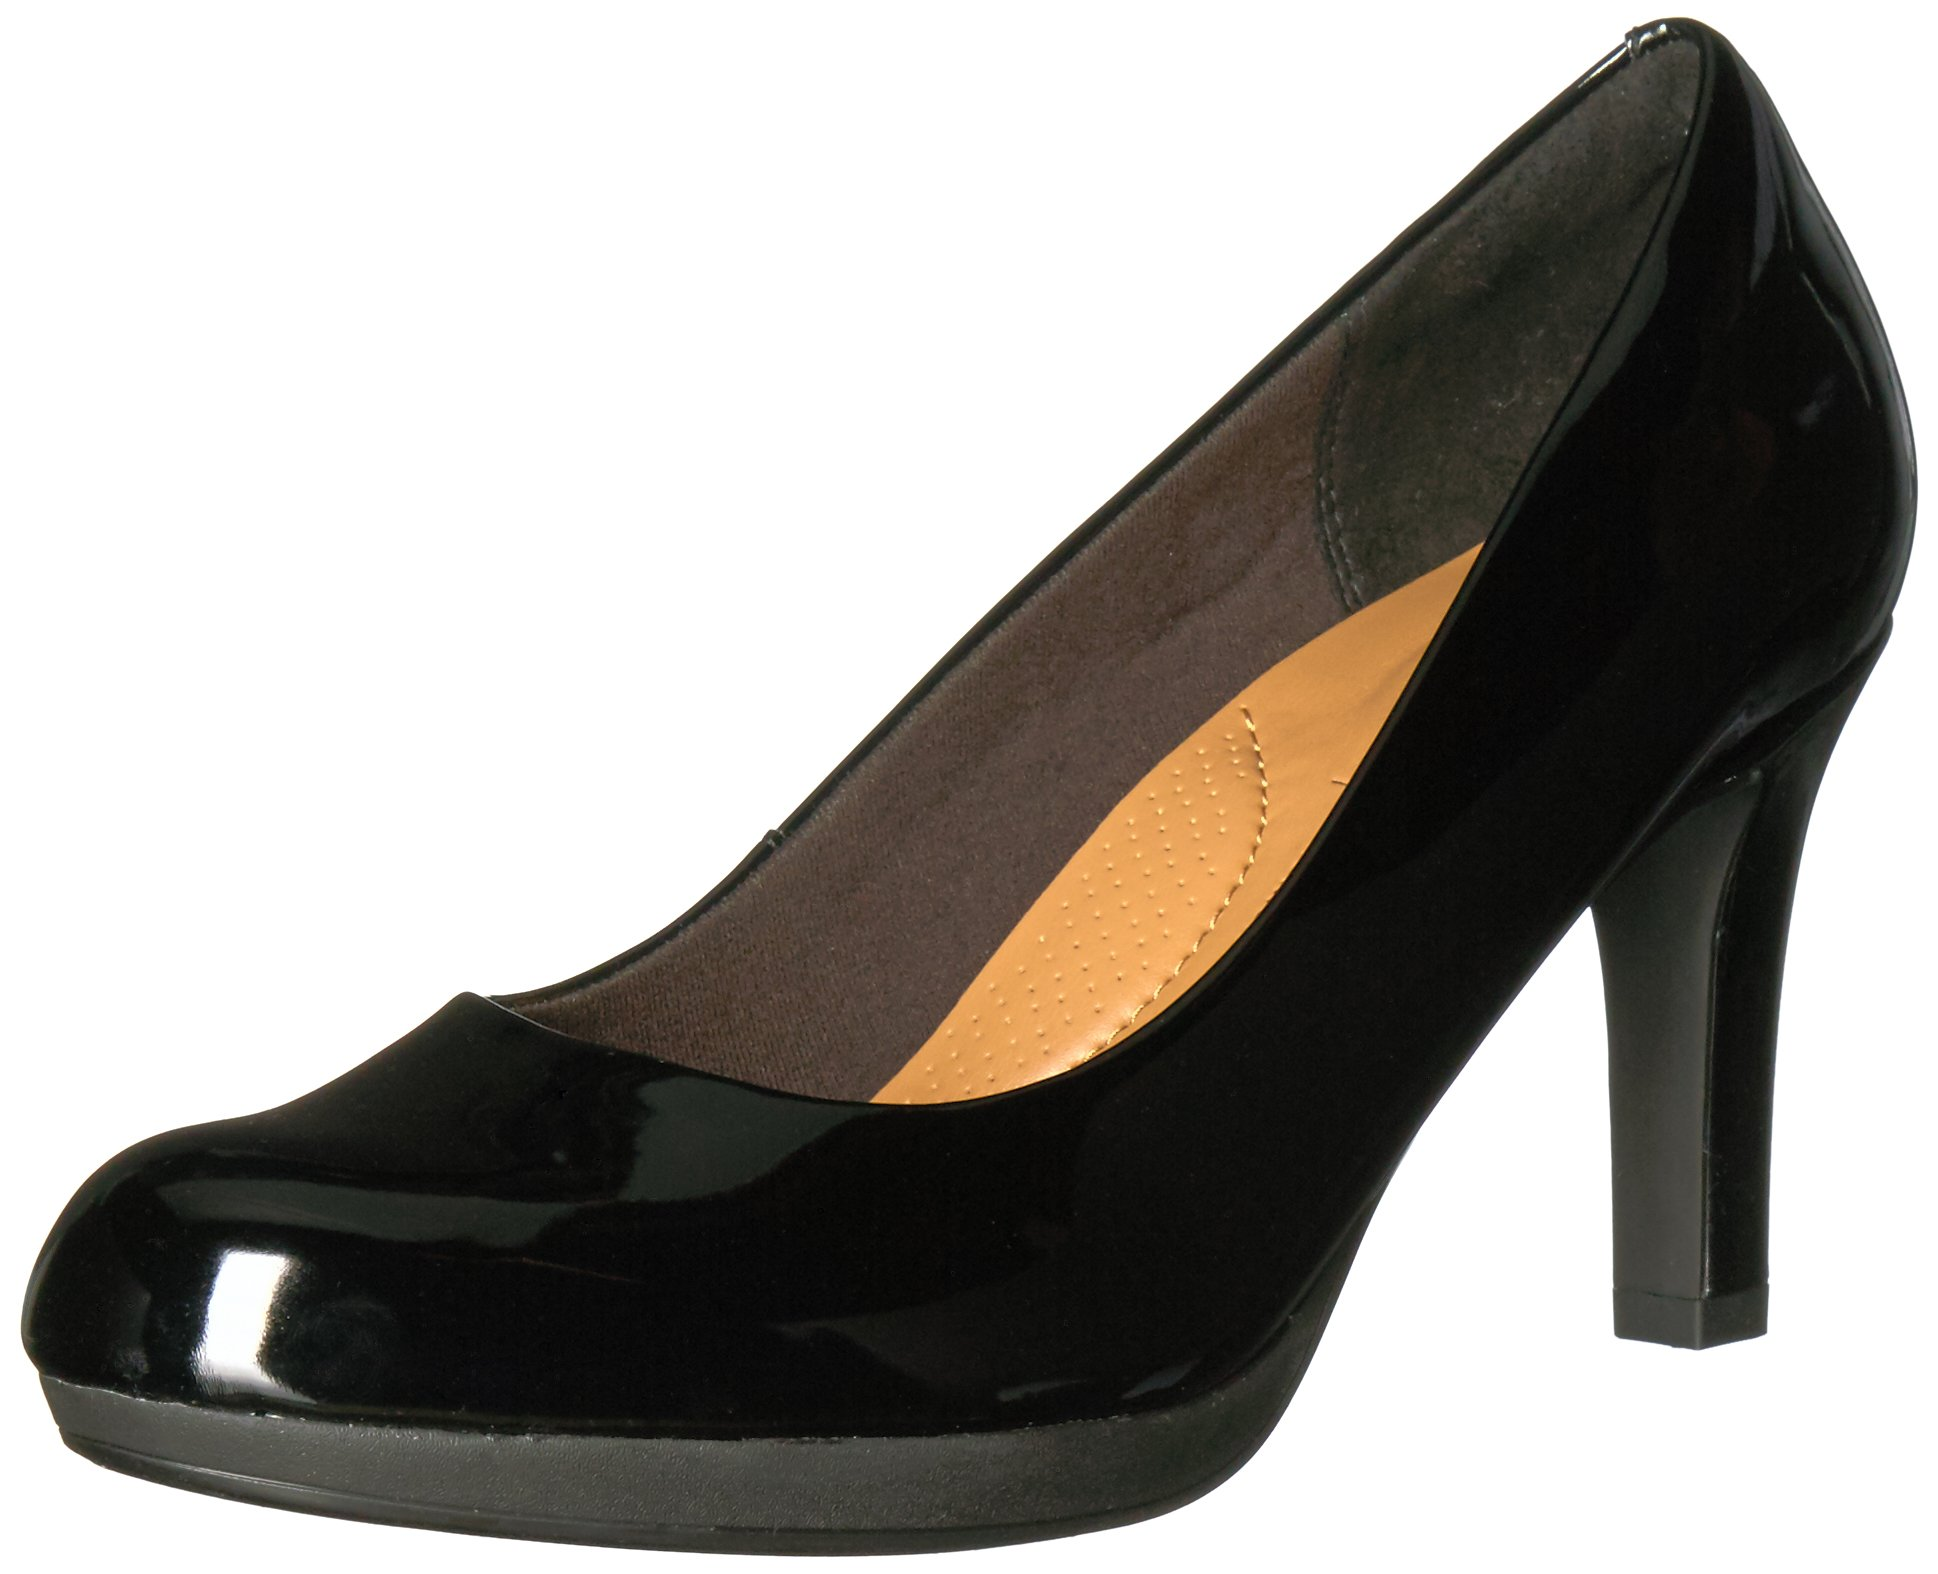 CLARKS Women's Adriel Viola Dress Pump, Black Patent, 8.5 W US